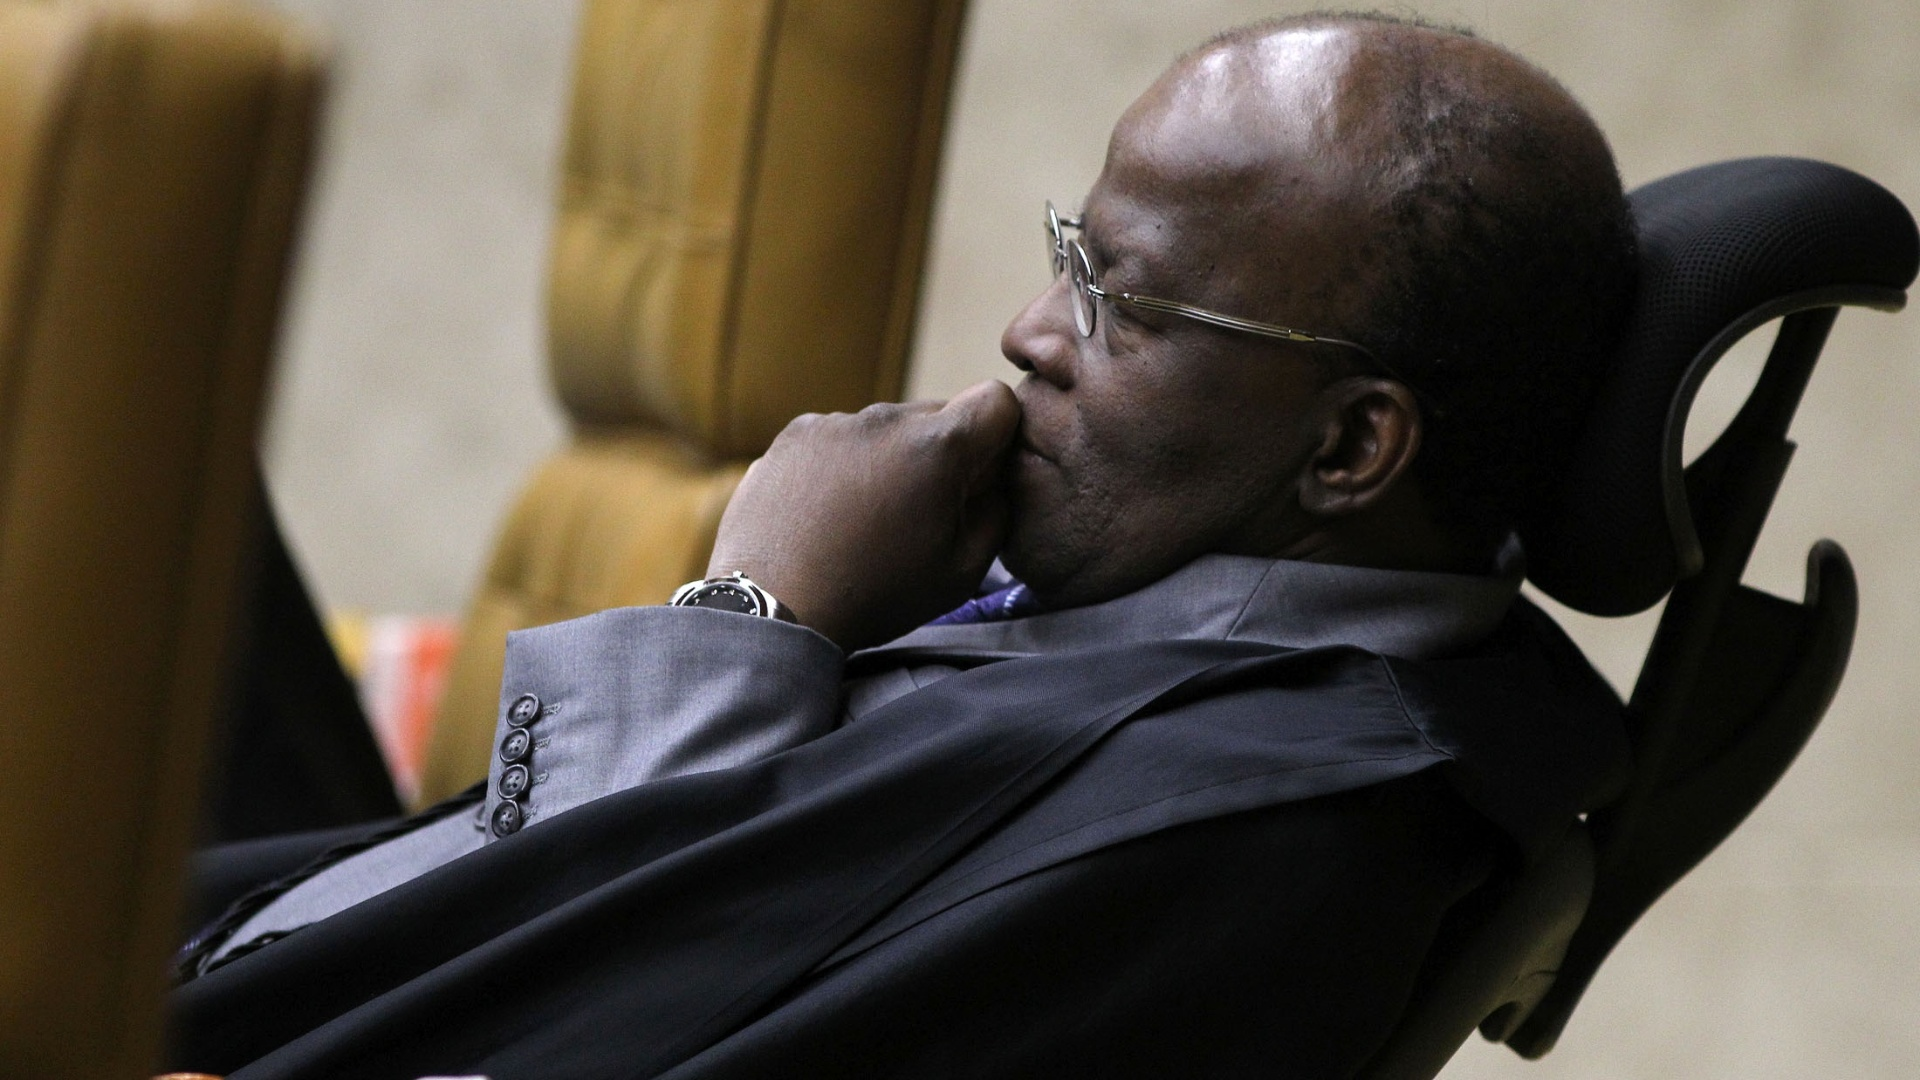 1.out.2012 - Ministro relator do processo, Joaquim Barbosa acompanha o processo em uma cadeira diferente devido a um problema de coluna